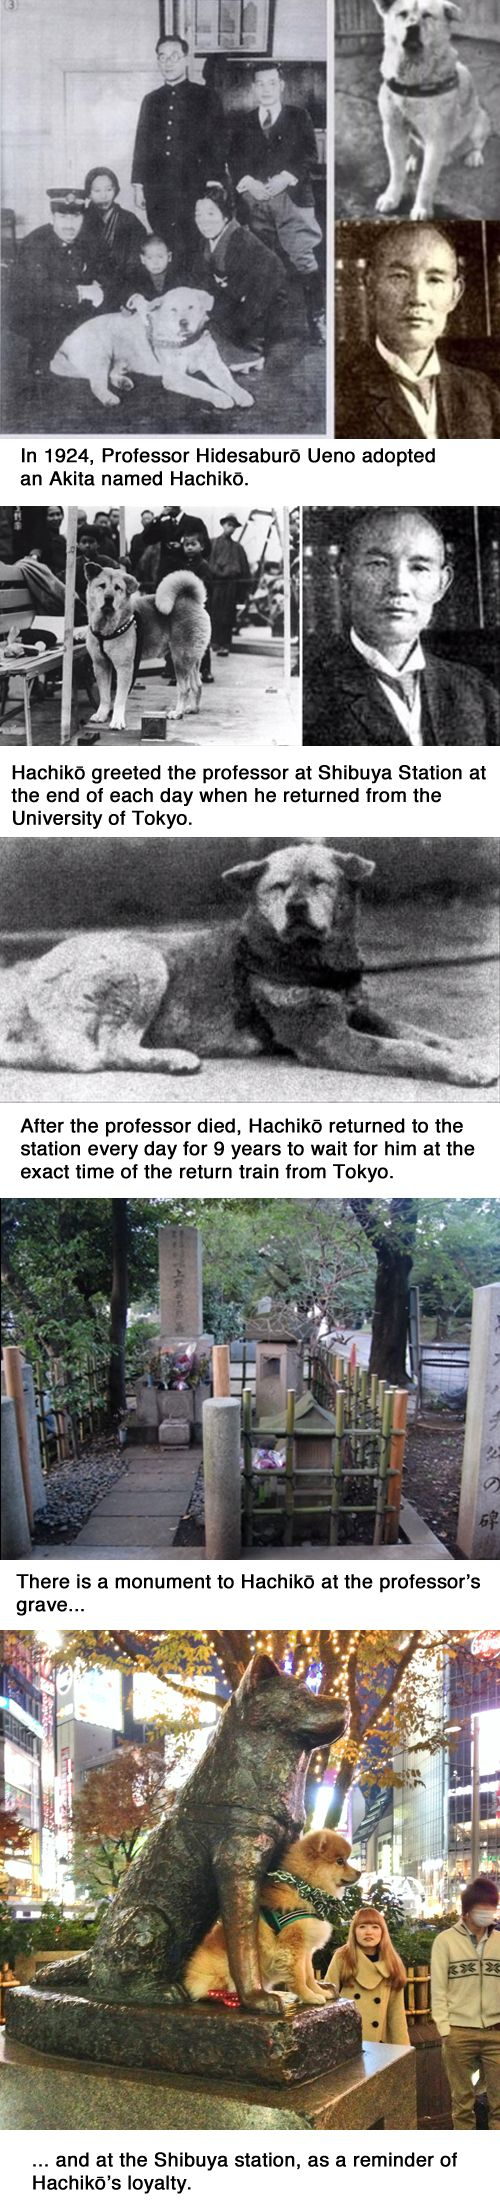 Hachiko: The dog who waited for his owner at the train station: | 14 Pictures That Prove Animals Are Better Than People